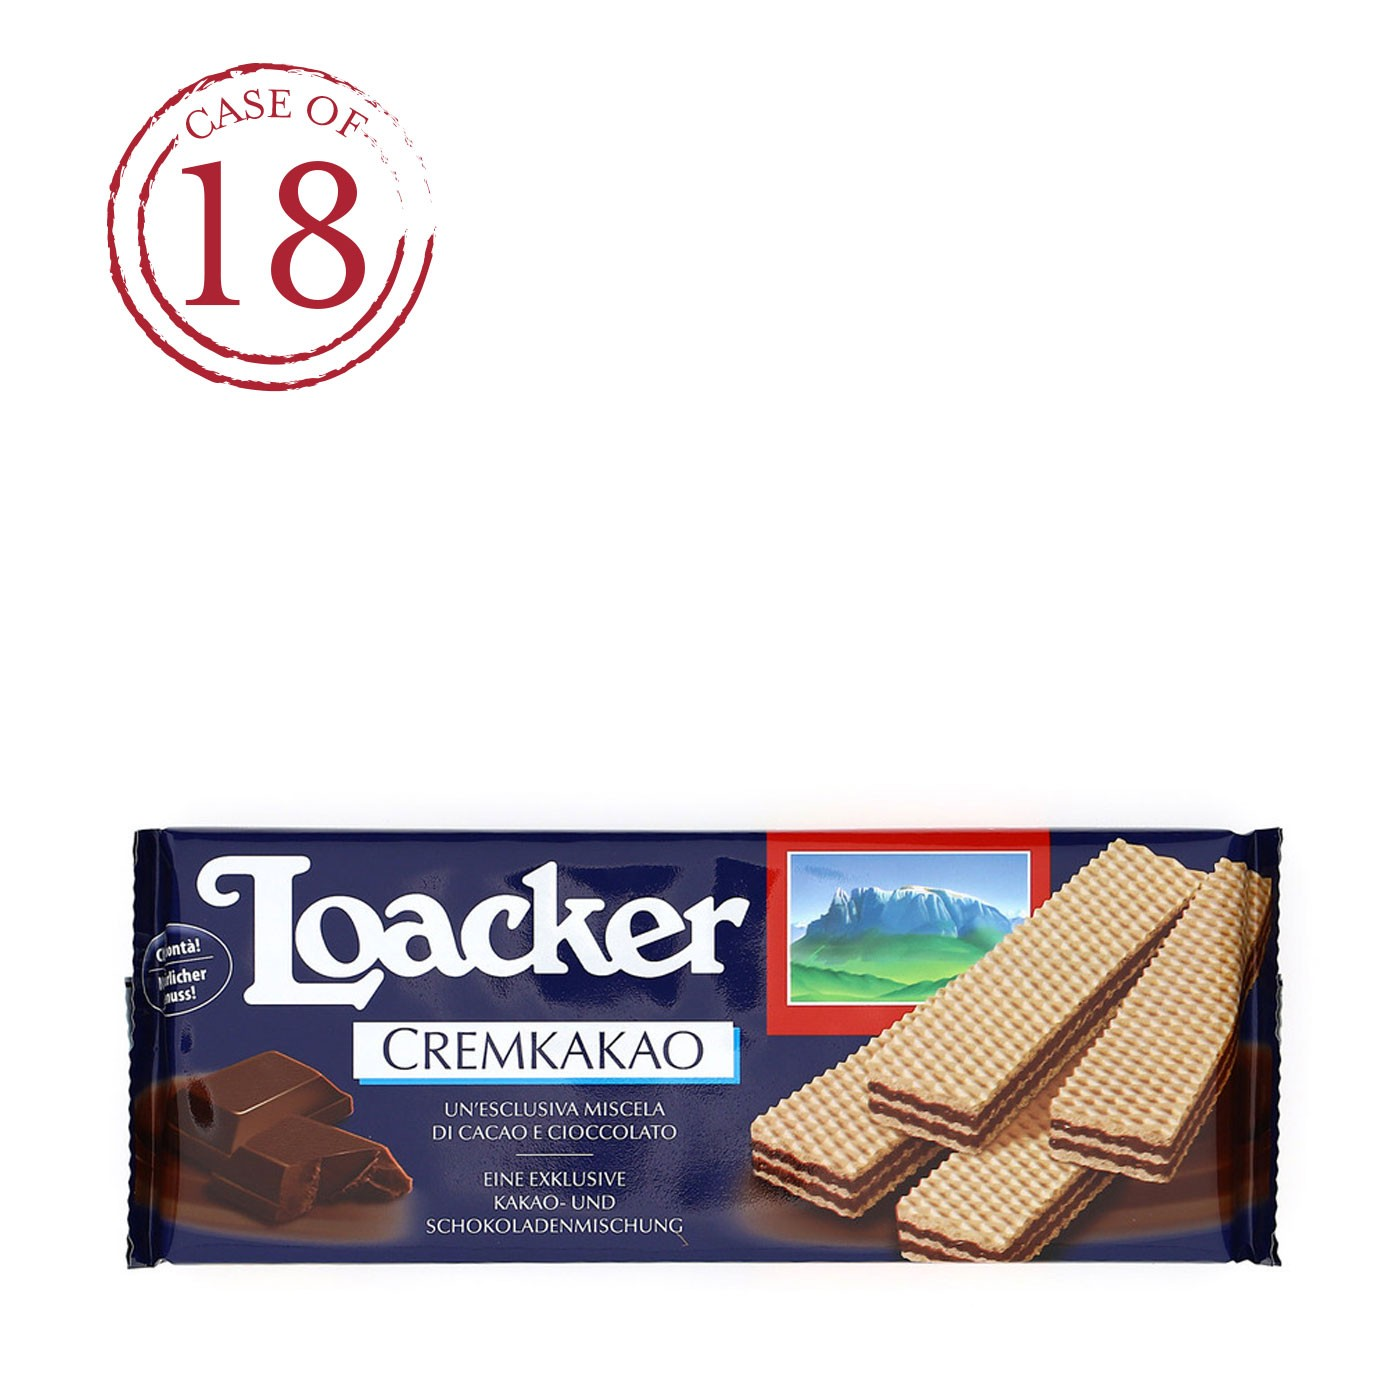 Classic Chocolate Wafers 6.17 oz - Case of 18